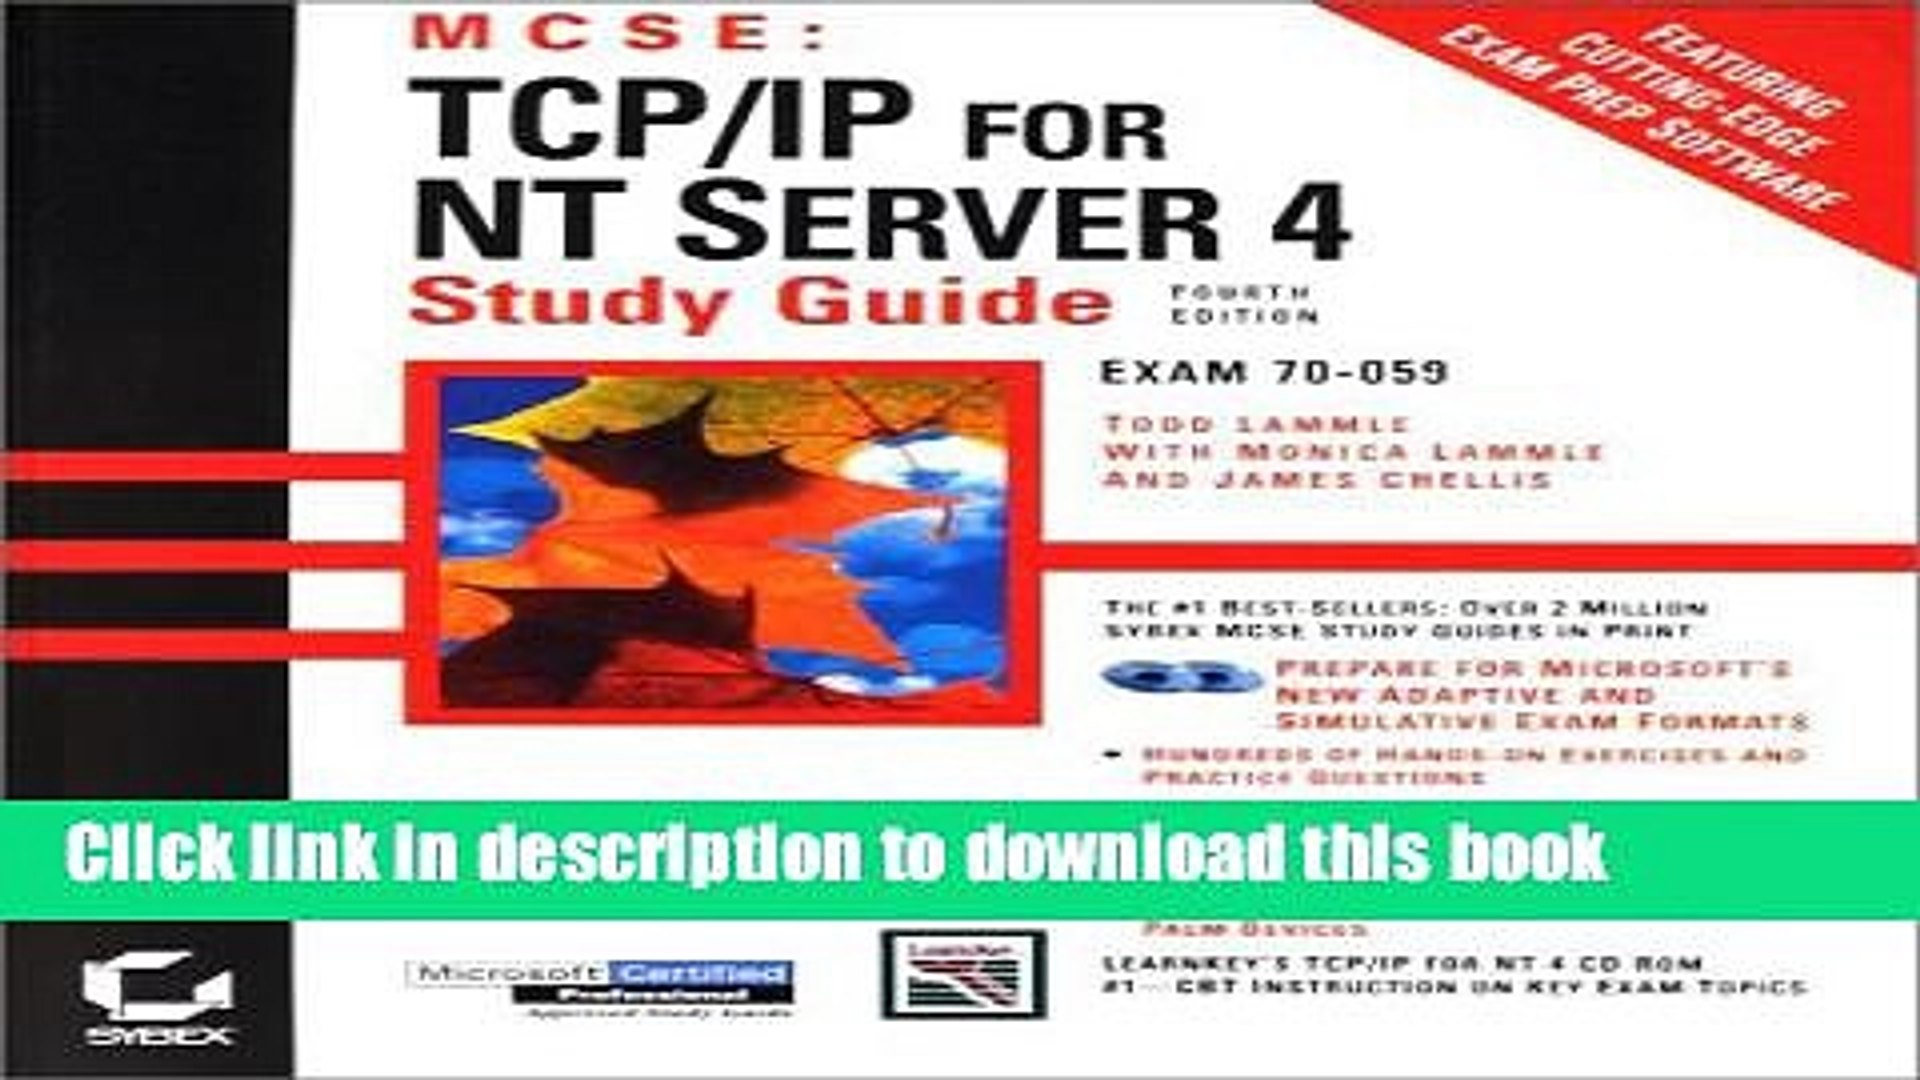 Download MCSE: TCP/IP for NT Server 4 Study Guide PDF Free